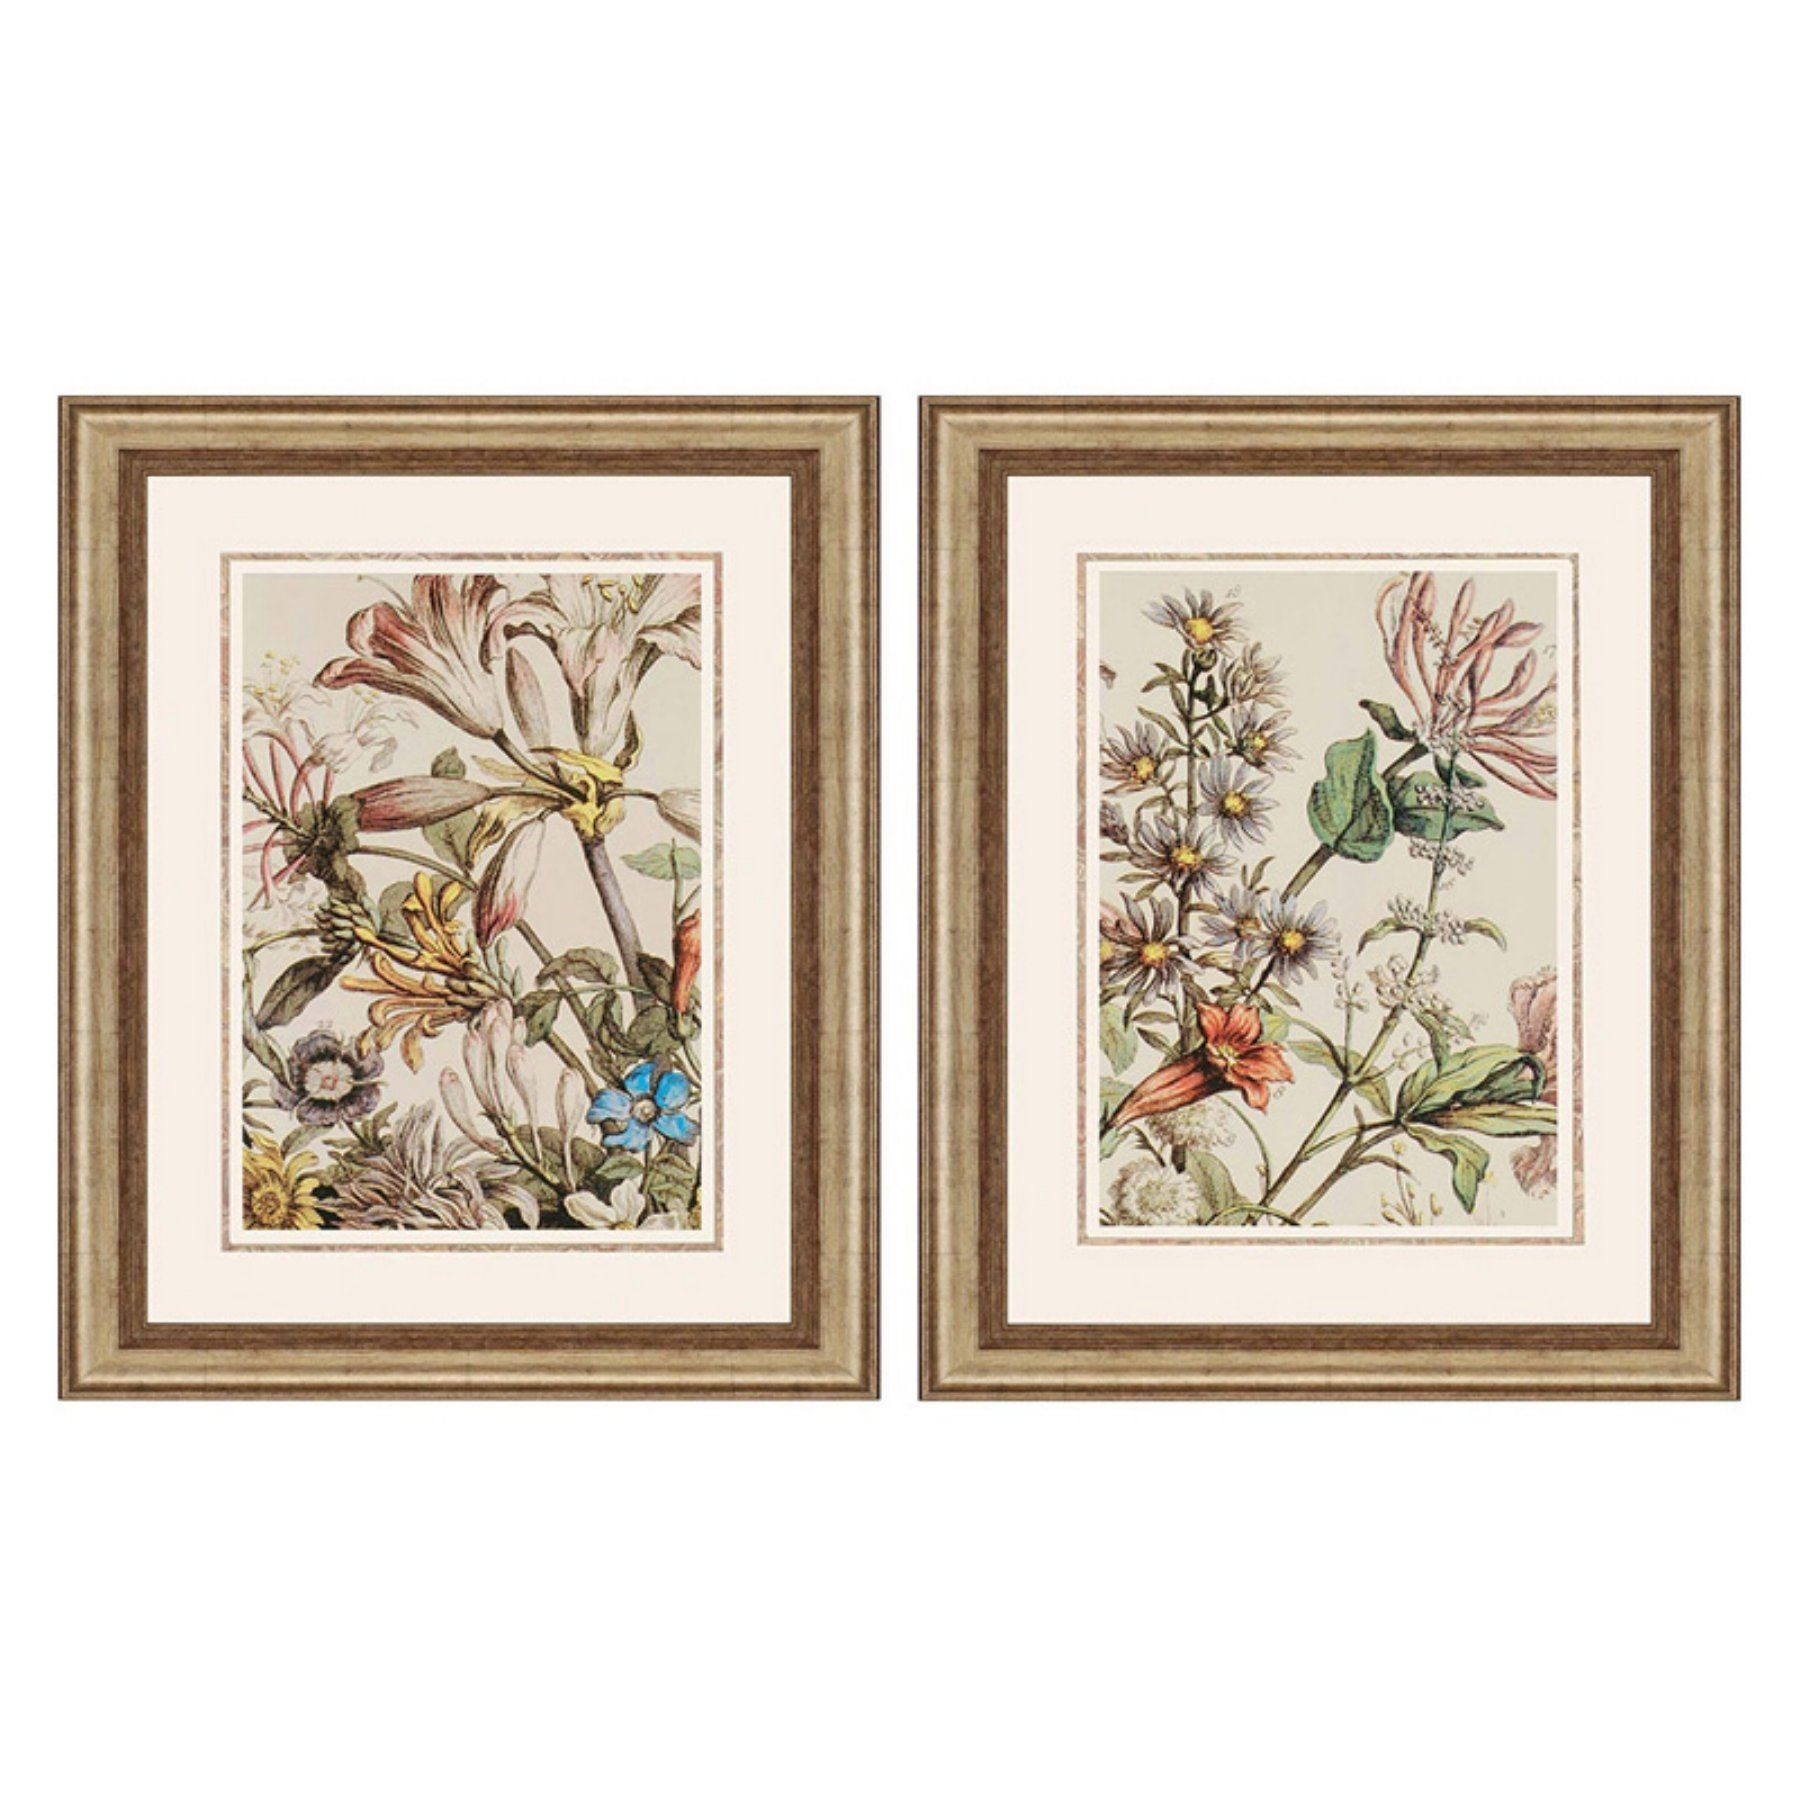 Paragon Decor October Detail Framed Wall Art – Set Of 2 – 7654 For Most Recent Set Of 2 Framed Wall Art (View 5 of 20)